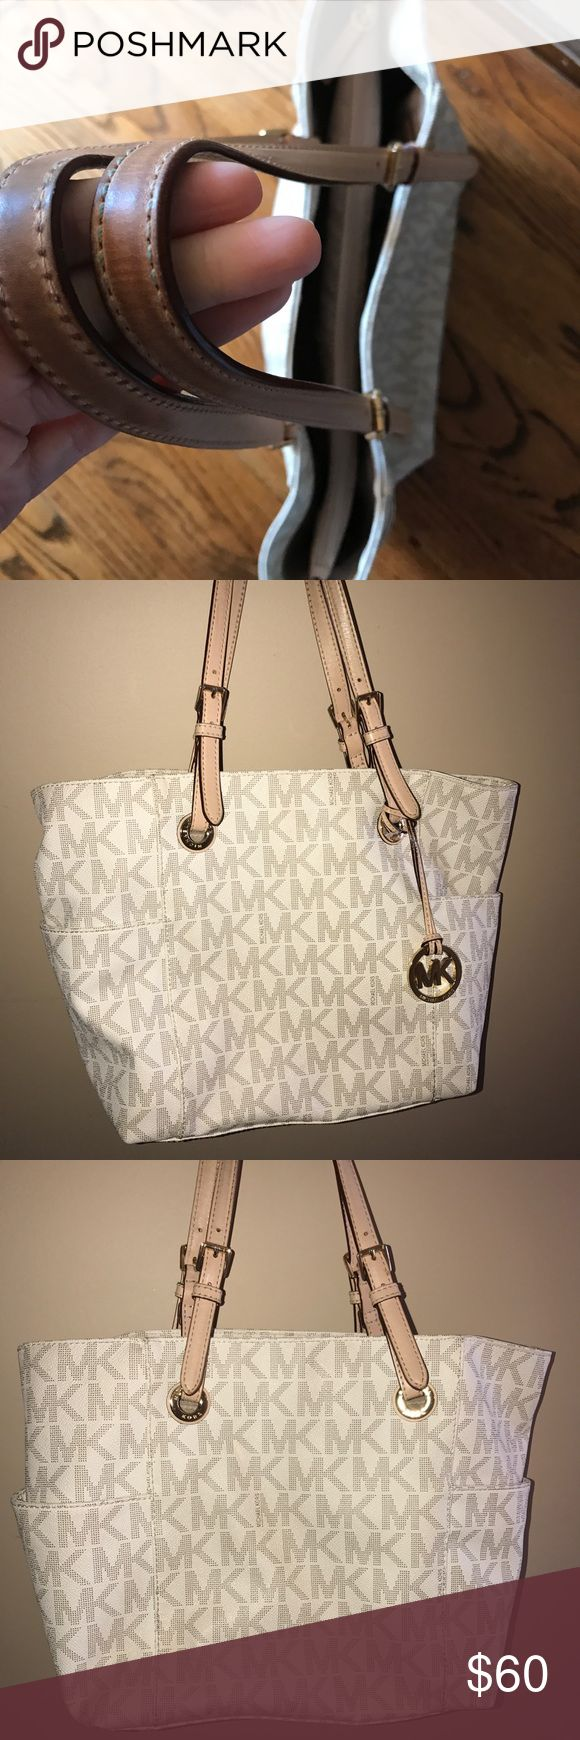 """Michael Kors Classic Jet Set Beige Tote Authentic Michael Kors Jet Set travel tote in a vanilla color designed with signature MK logos is elegantly detailed with gold-toned hardware giving the bag a classy, yet casual look. The bag has been used, but taken care of and is in good condition with some wear around the straps and with few red lipstick stains in the inside zipper pocket.  The inside has interior zipper pocket and 2 small slots. 9"""" shoulder drop. Exterior open slots on each side…"""